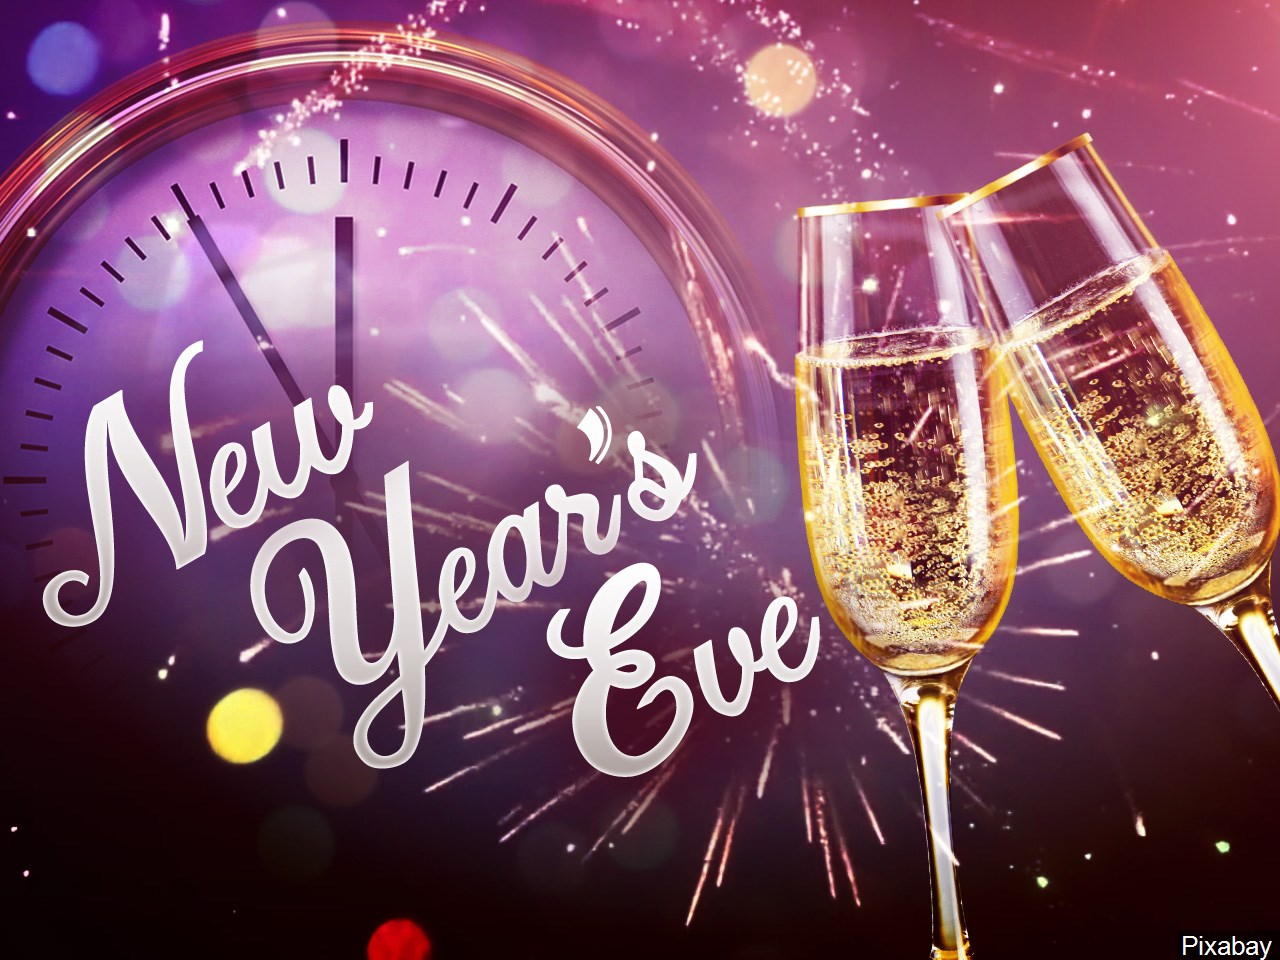 Glasses of Champaign in front of a clock nearing midnight and text that says New Year's Eve..